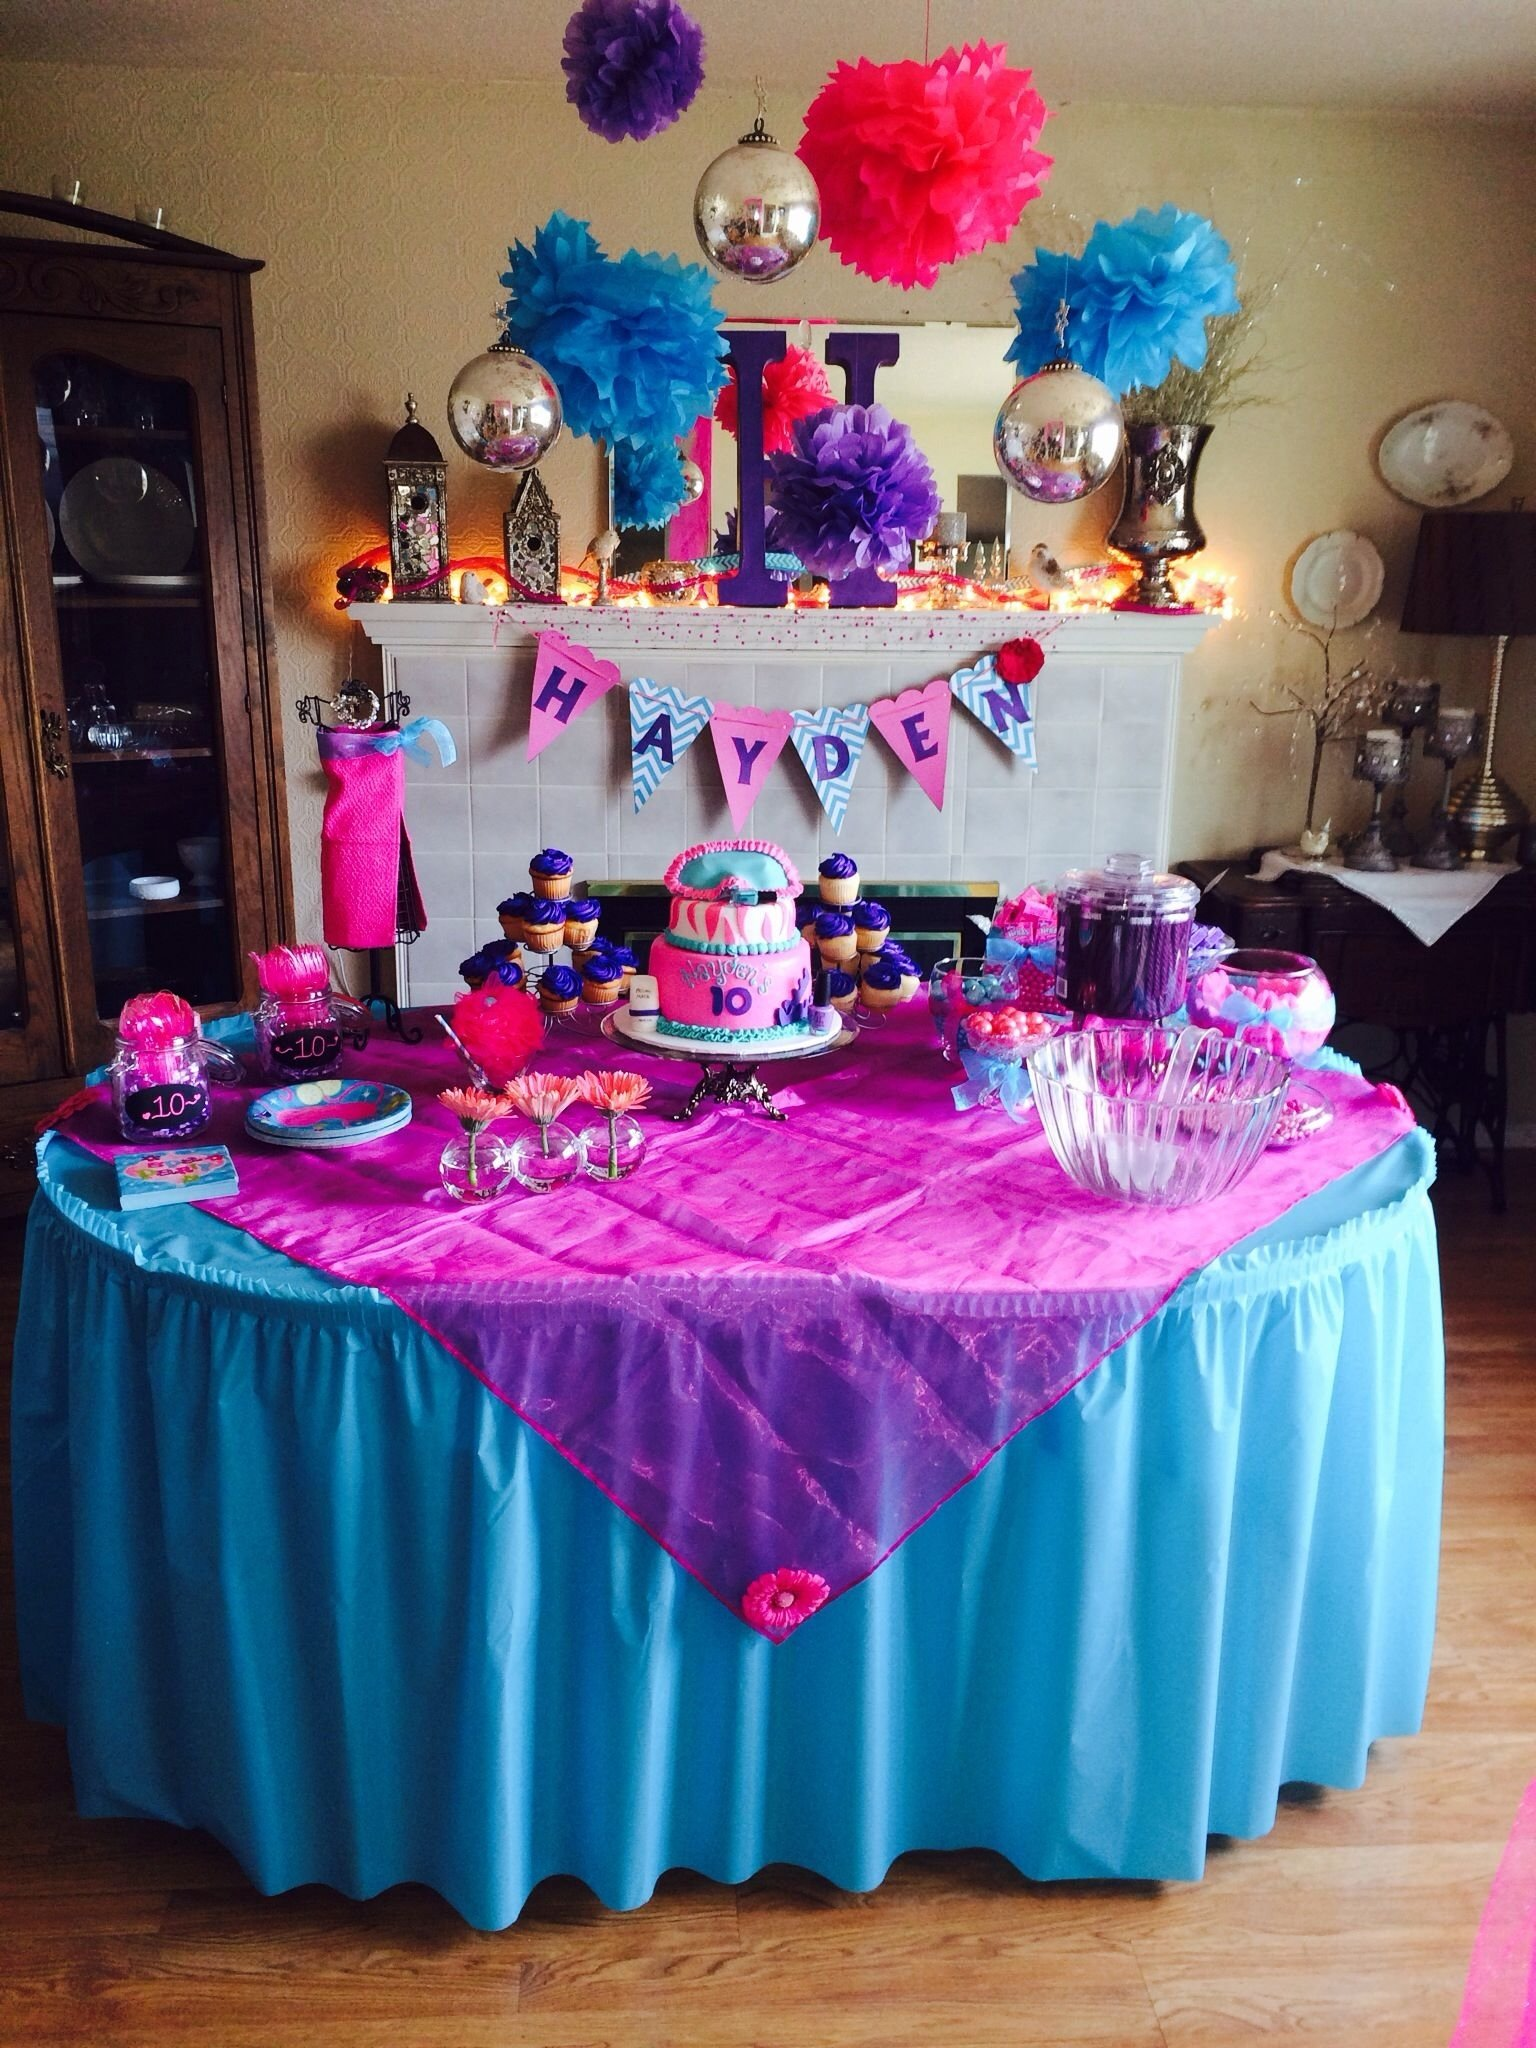 10 Nice Birthday Party Ideas For A 10 Year Old Girl girls 10th birthday party party ideas pinterest 10th birthday 8 2020